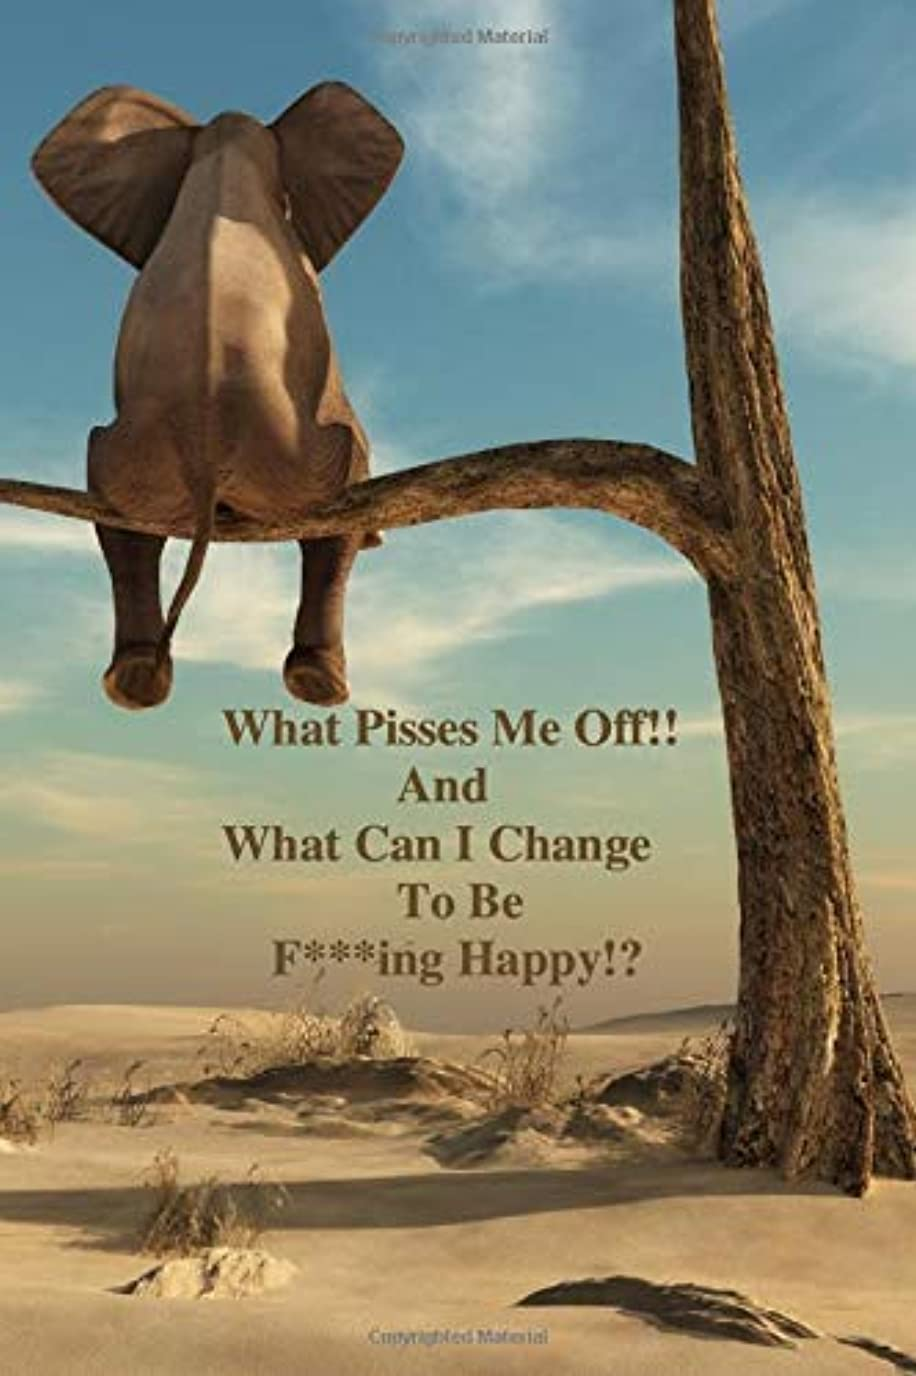 注目すべき霧深い思想What Pisses Me Off!? And What Can I Change!? To Be F***ing Happy!: Motivational Notebook, Journal, Diary, Humor (200 Pages, 6 x 9) (Inspirational Quotes)